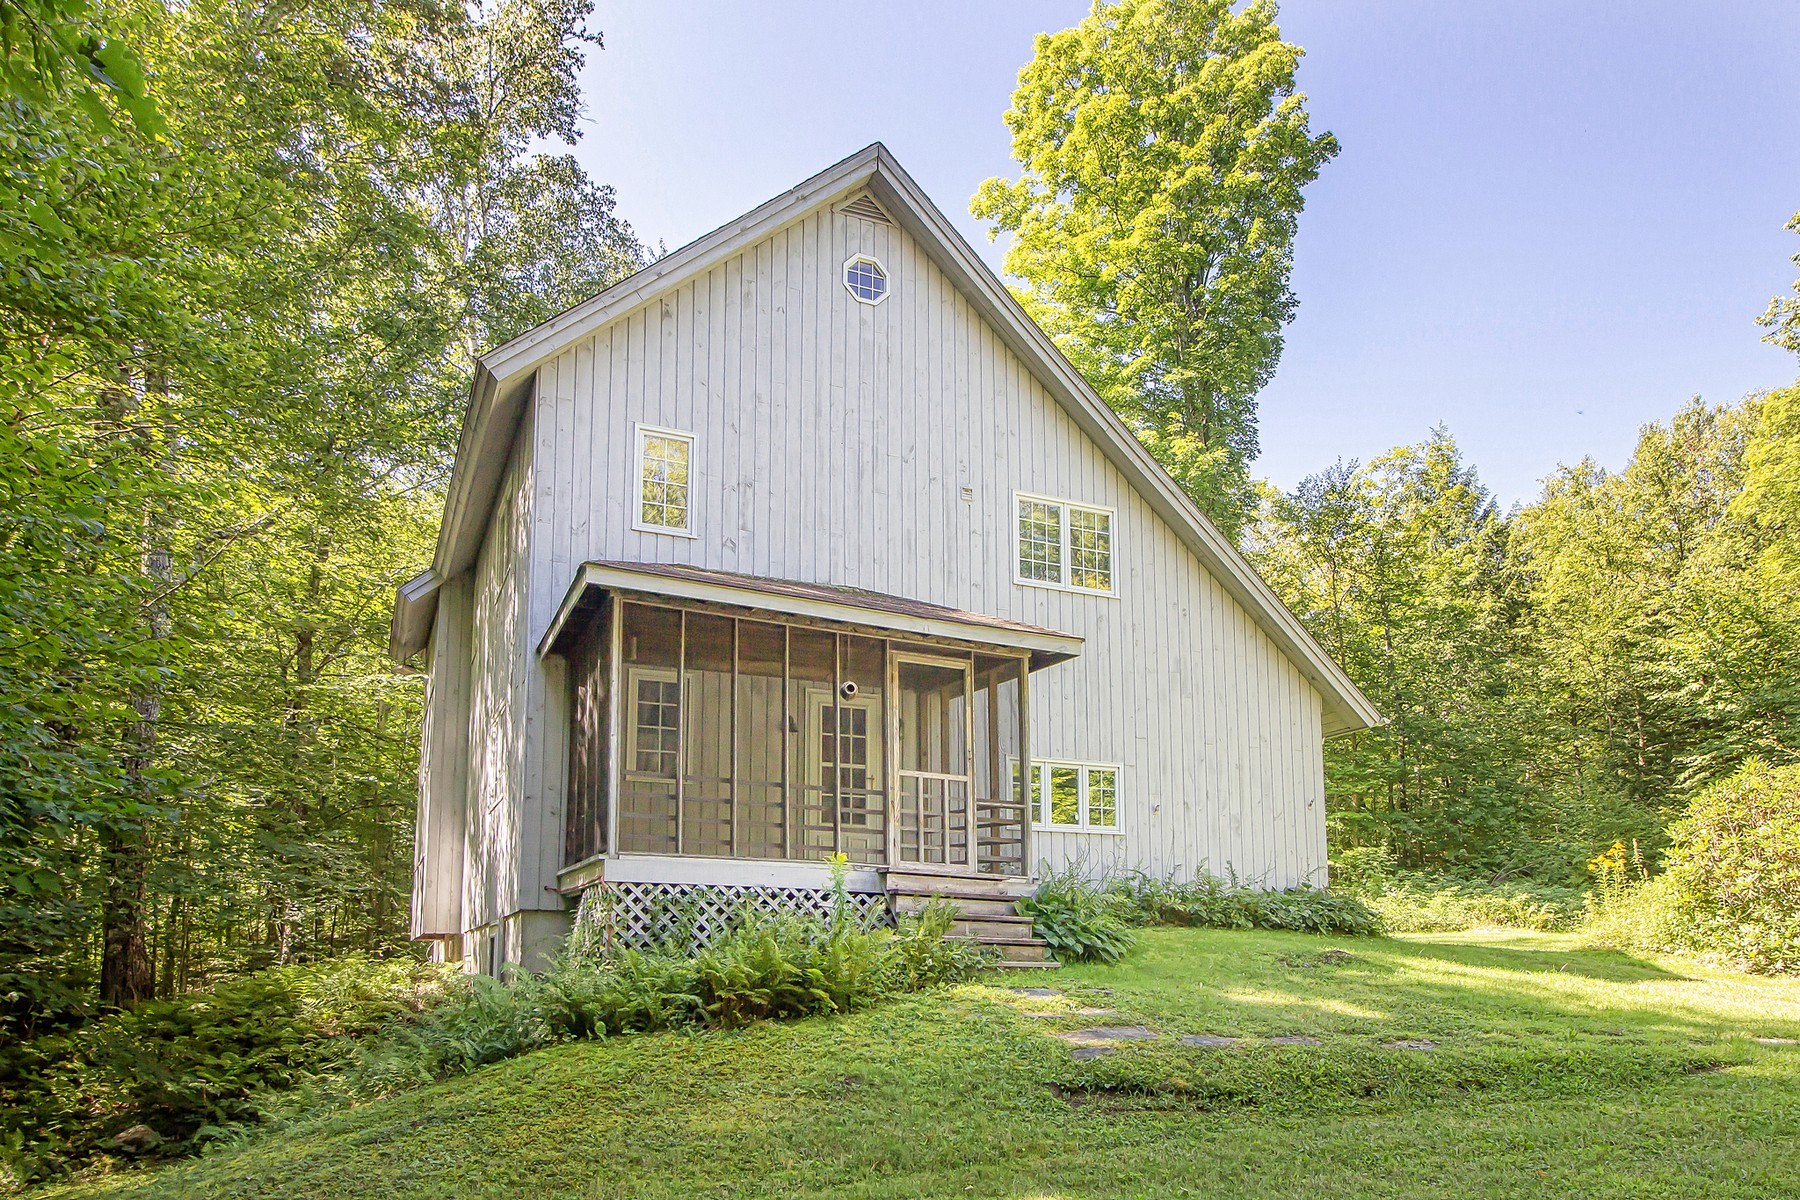 Single Family Homes for Sale at Country Home with a Pond 40 Yeaw Rd Dover, Vermont 05341 United States